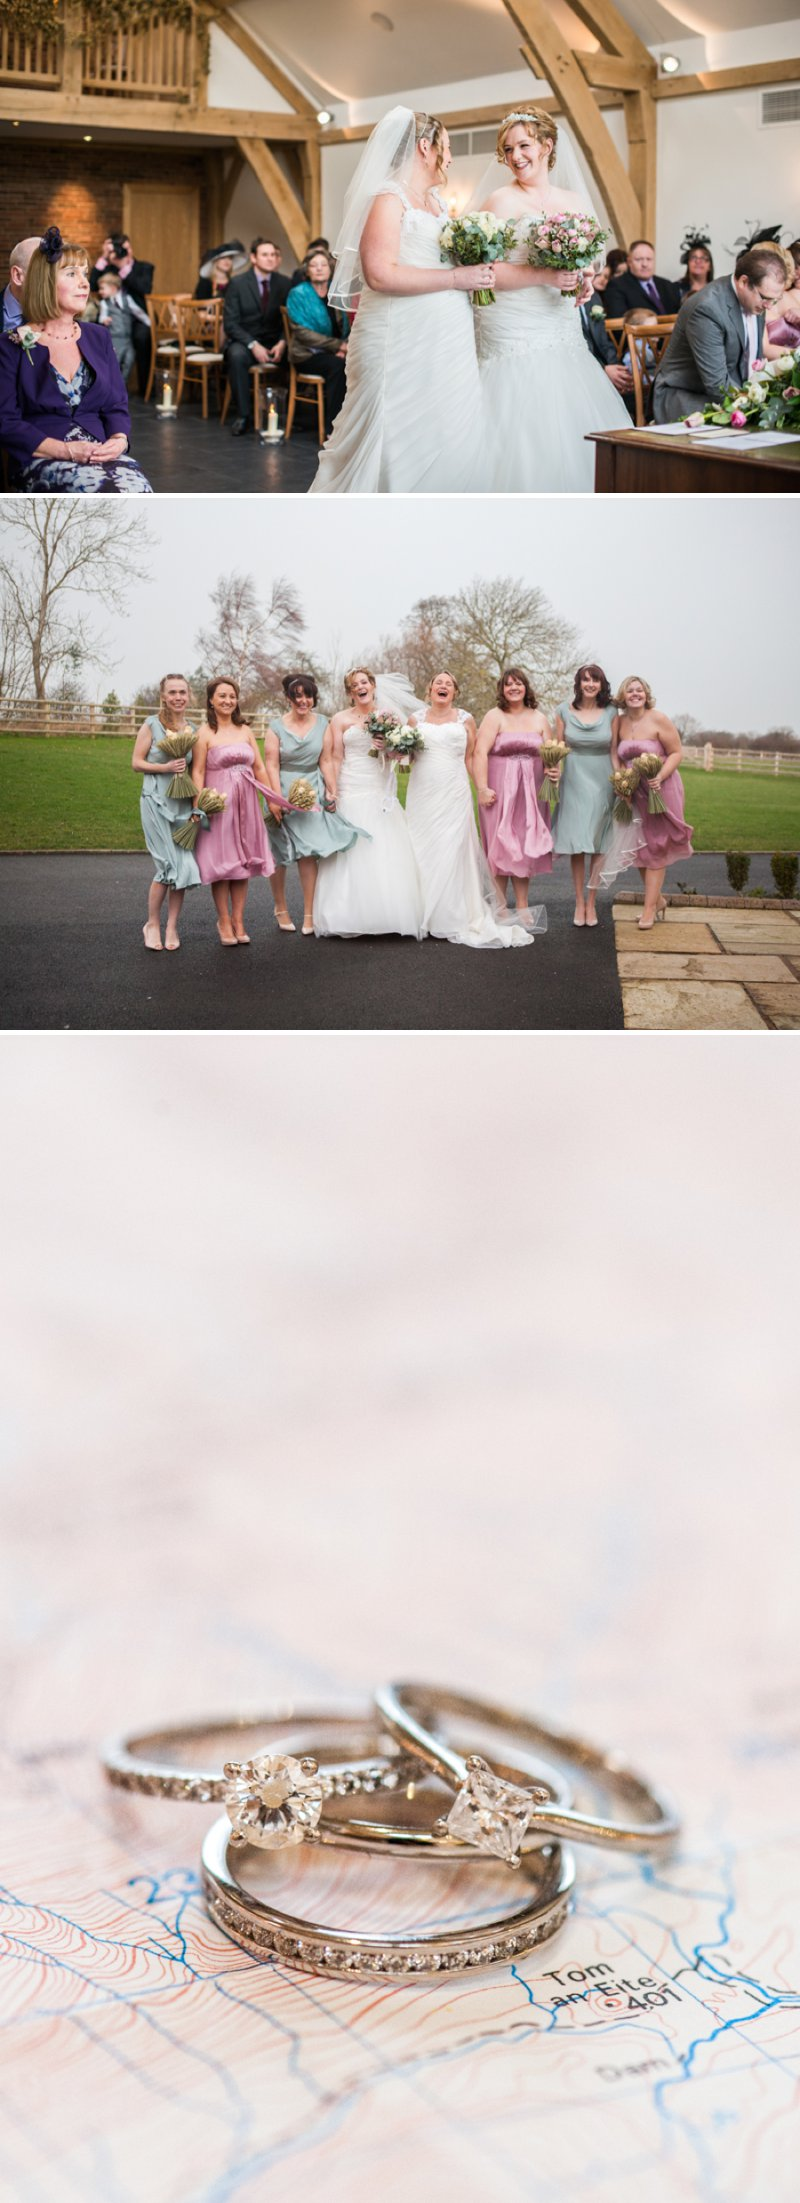 Rustic Same Sex Wedding At Mythe Barn With Brides In Traditional Ivory Gowns By Mori Lee And Donna Lee Designs With Bridesmaids In Dusky Pink And Sage Green 5